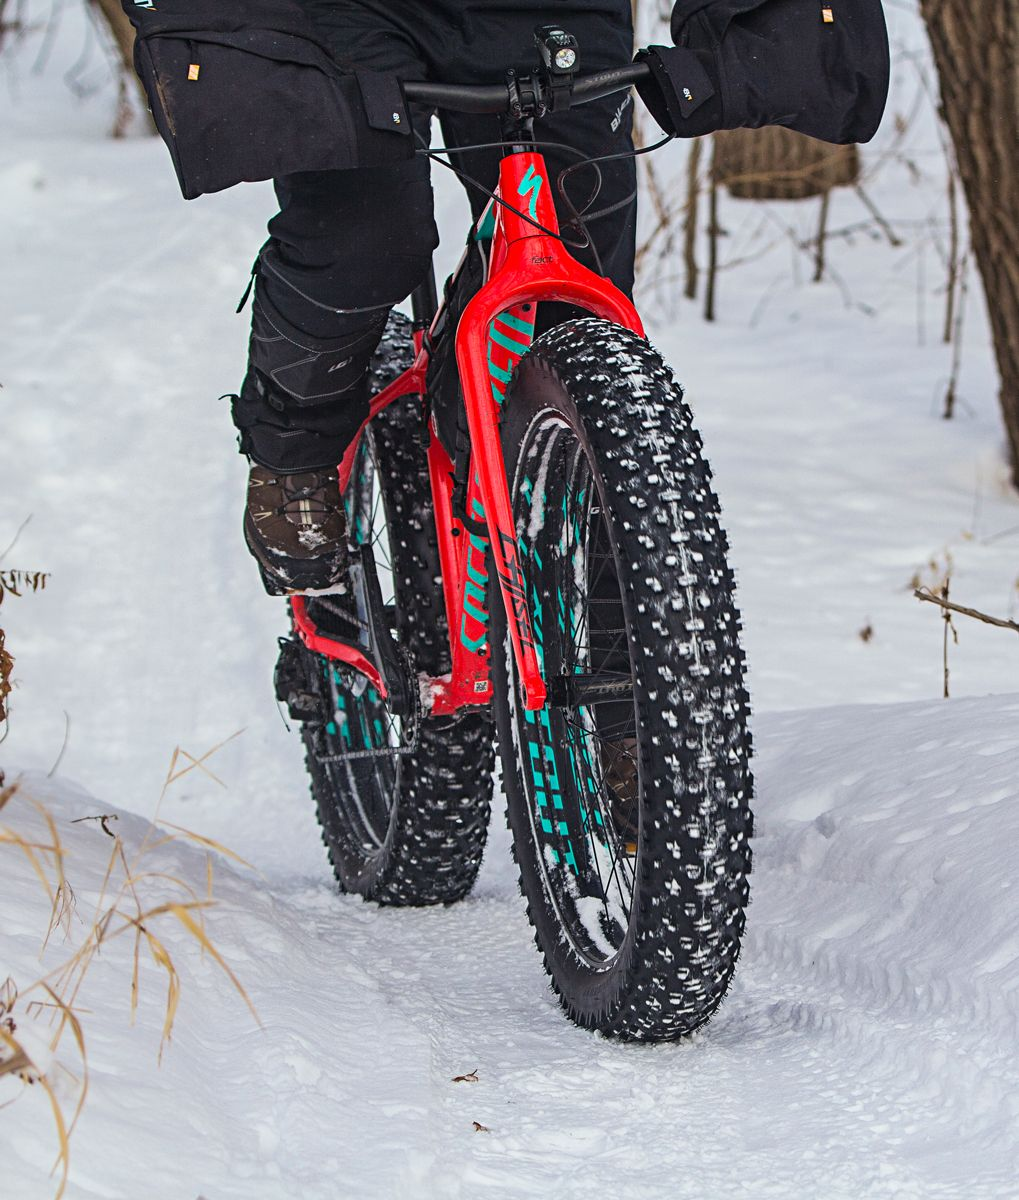 2018 Specialized Fatboy Base Fact Carbon Fork 4 6 Ground Control Tires Snowboard Shop Bicycle Cycling Bikes